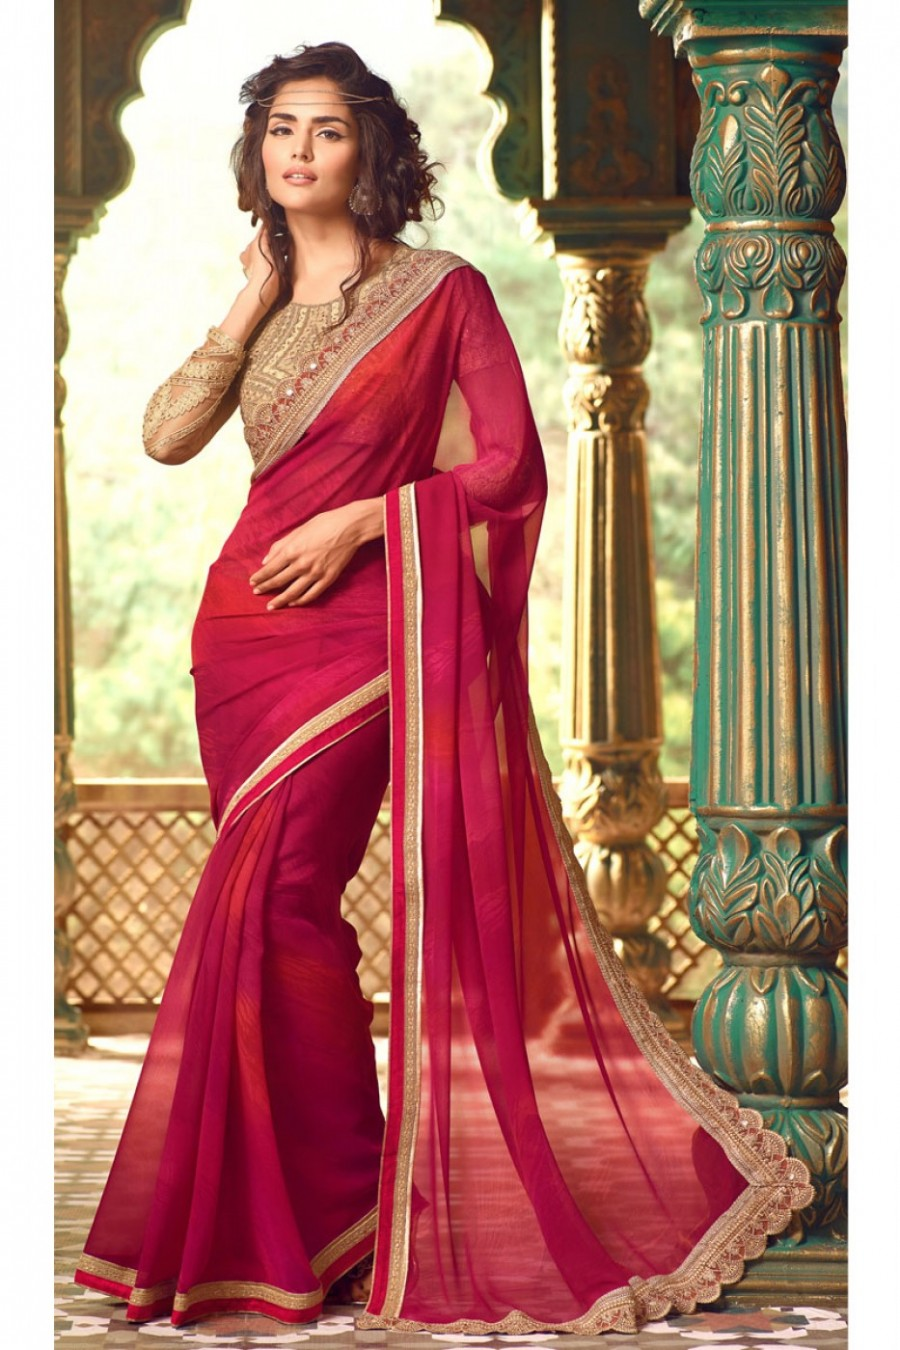 cdc264b050 Buy Red and Golden Cream Designer Embroidered Lace Border Work Saree on  Georgette Fabric with Fancy